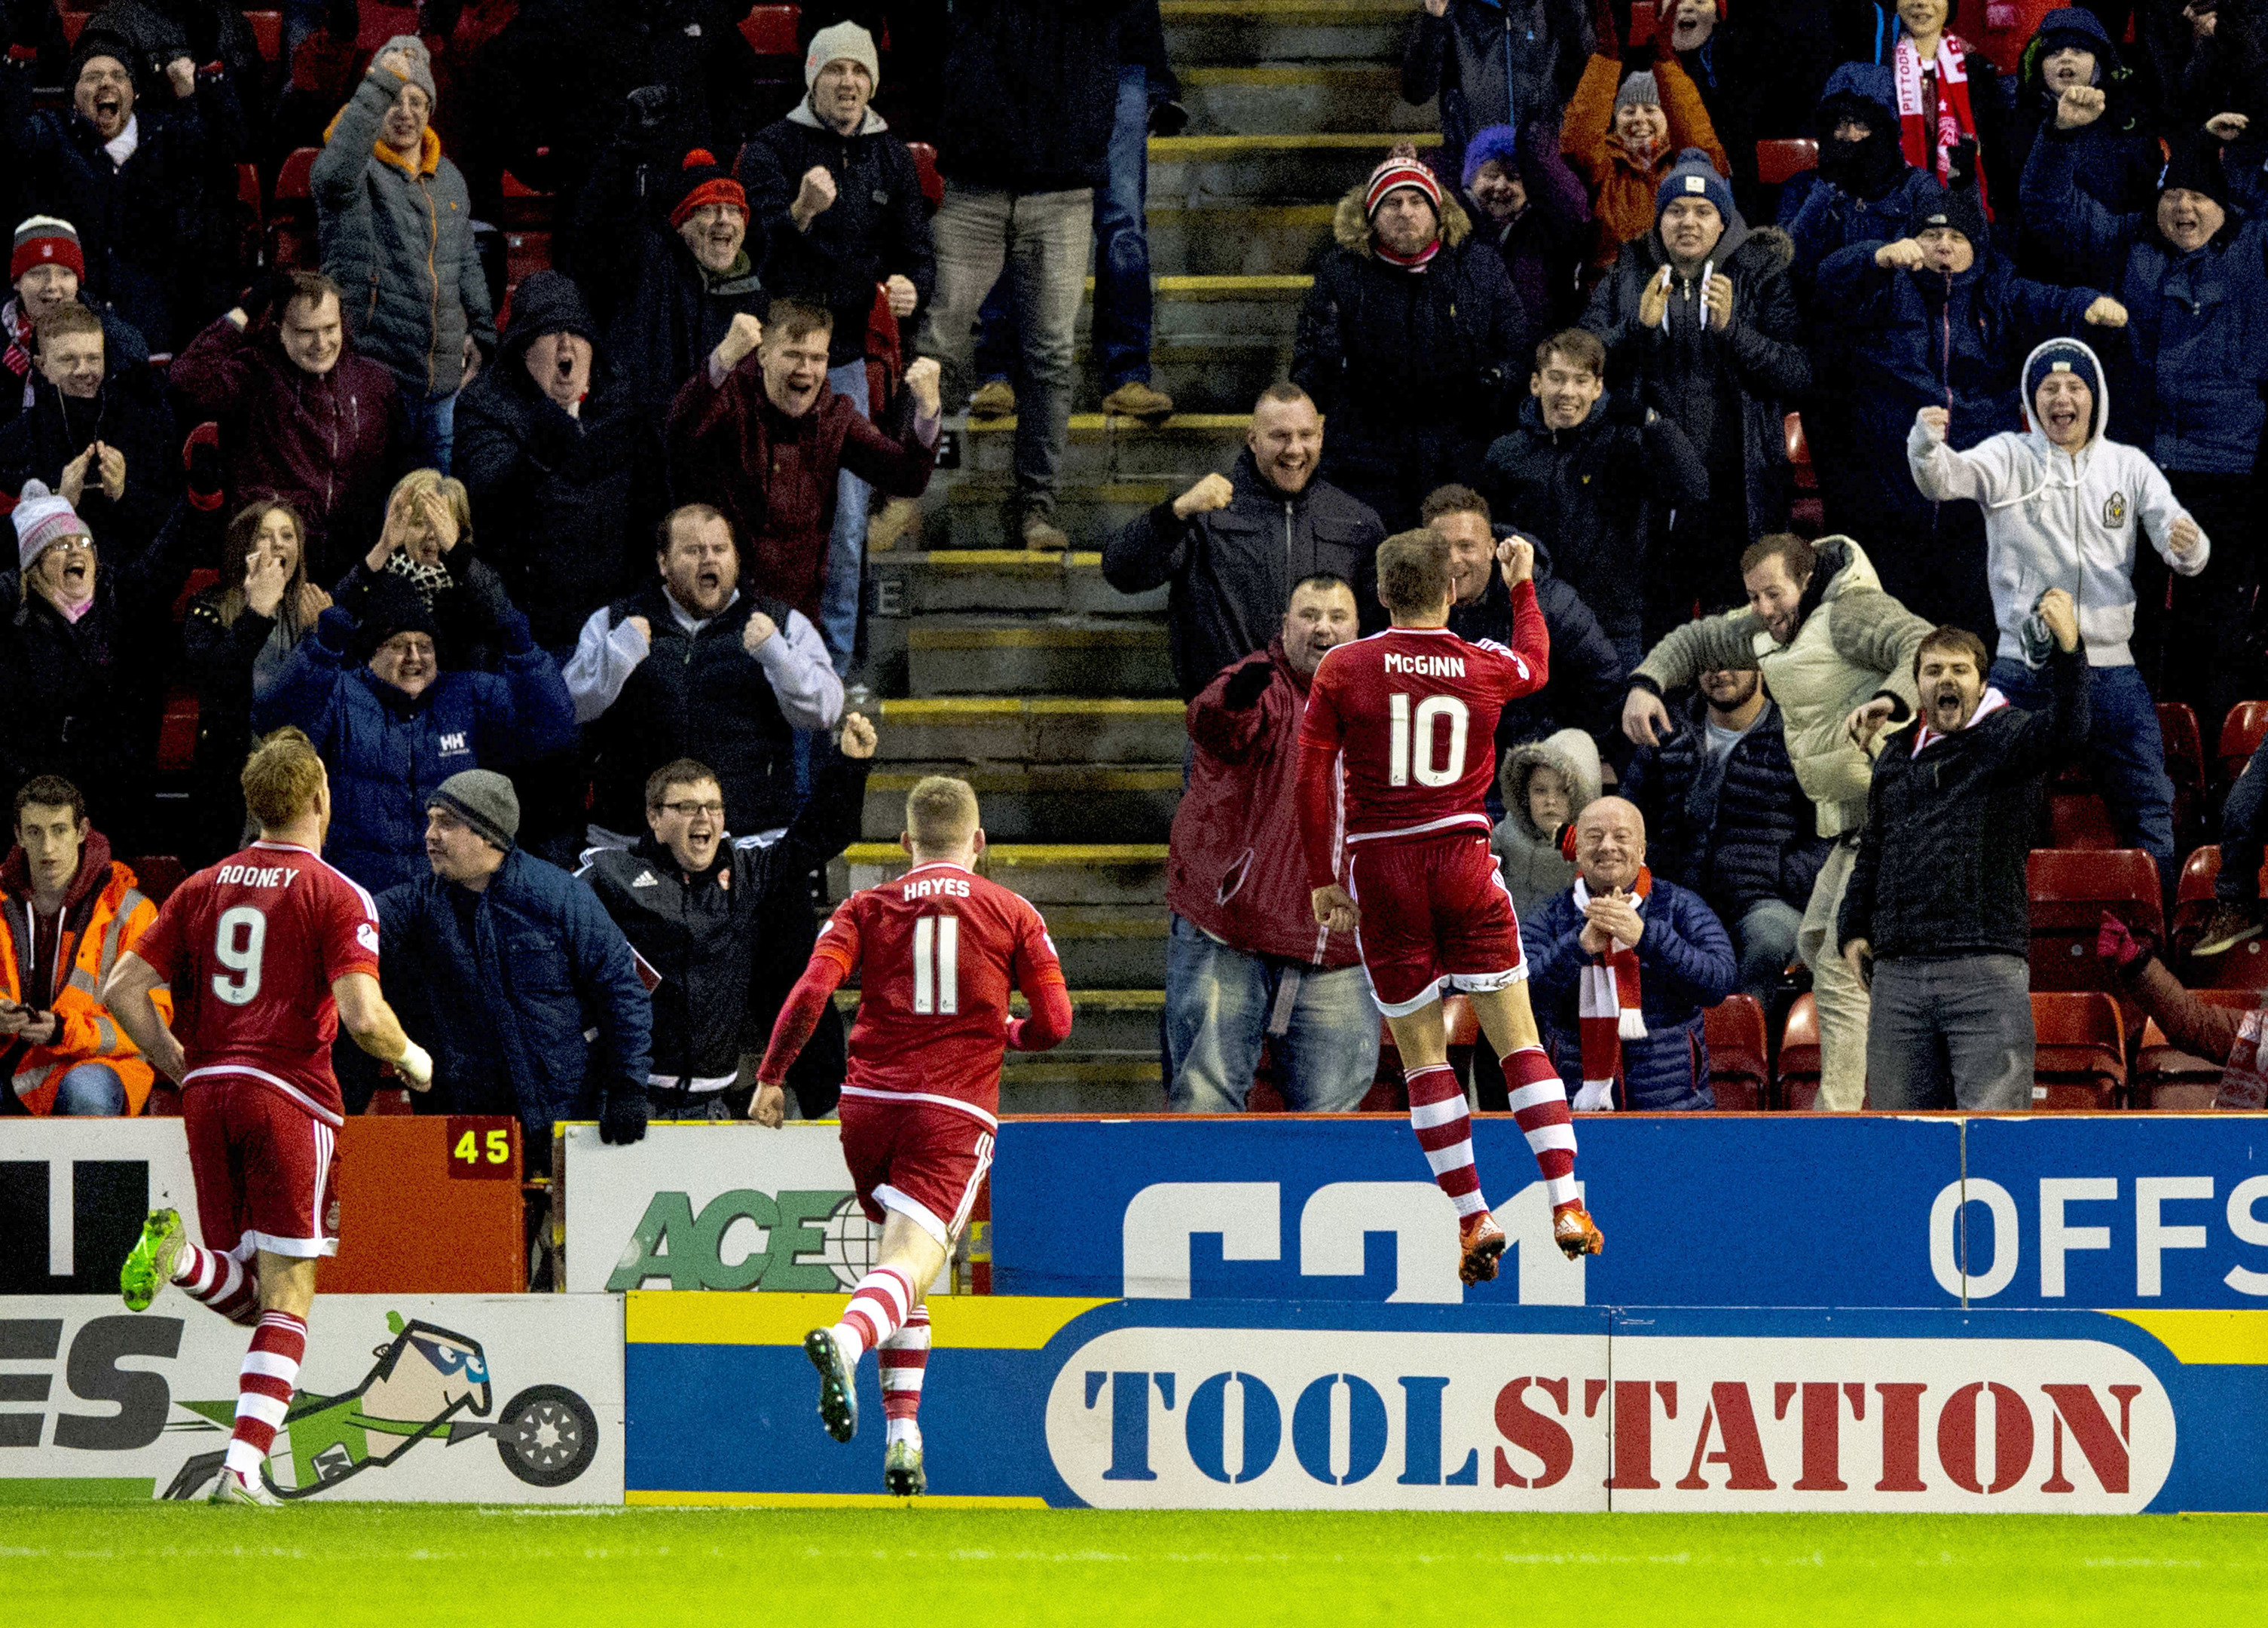 Niall McGinn celebrates his goal against County with the Dons fans